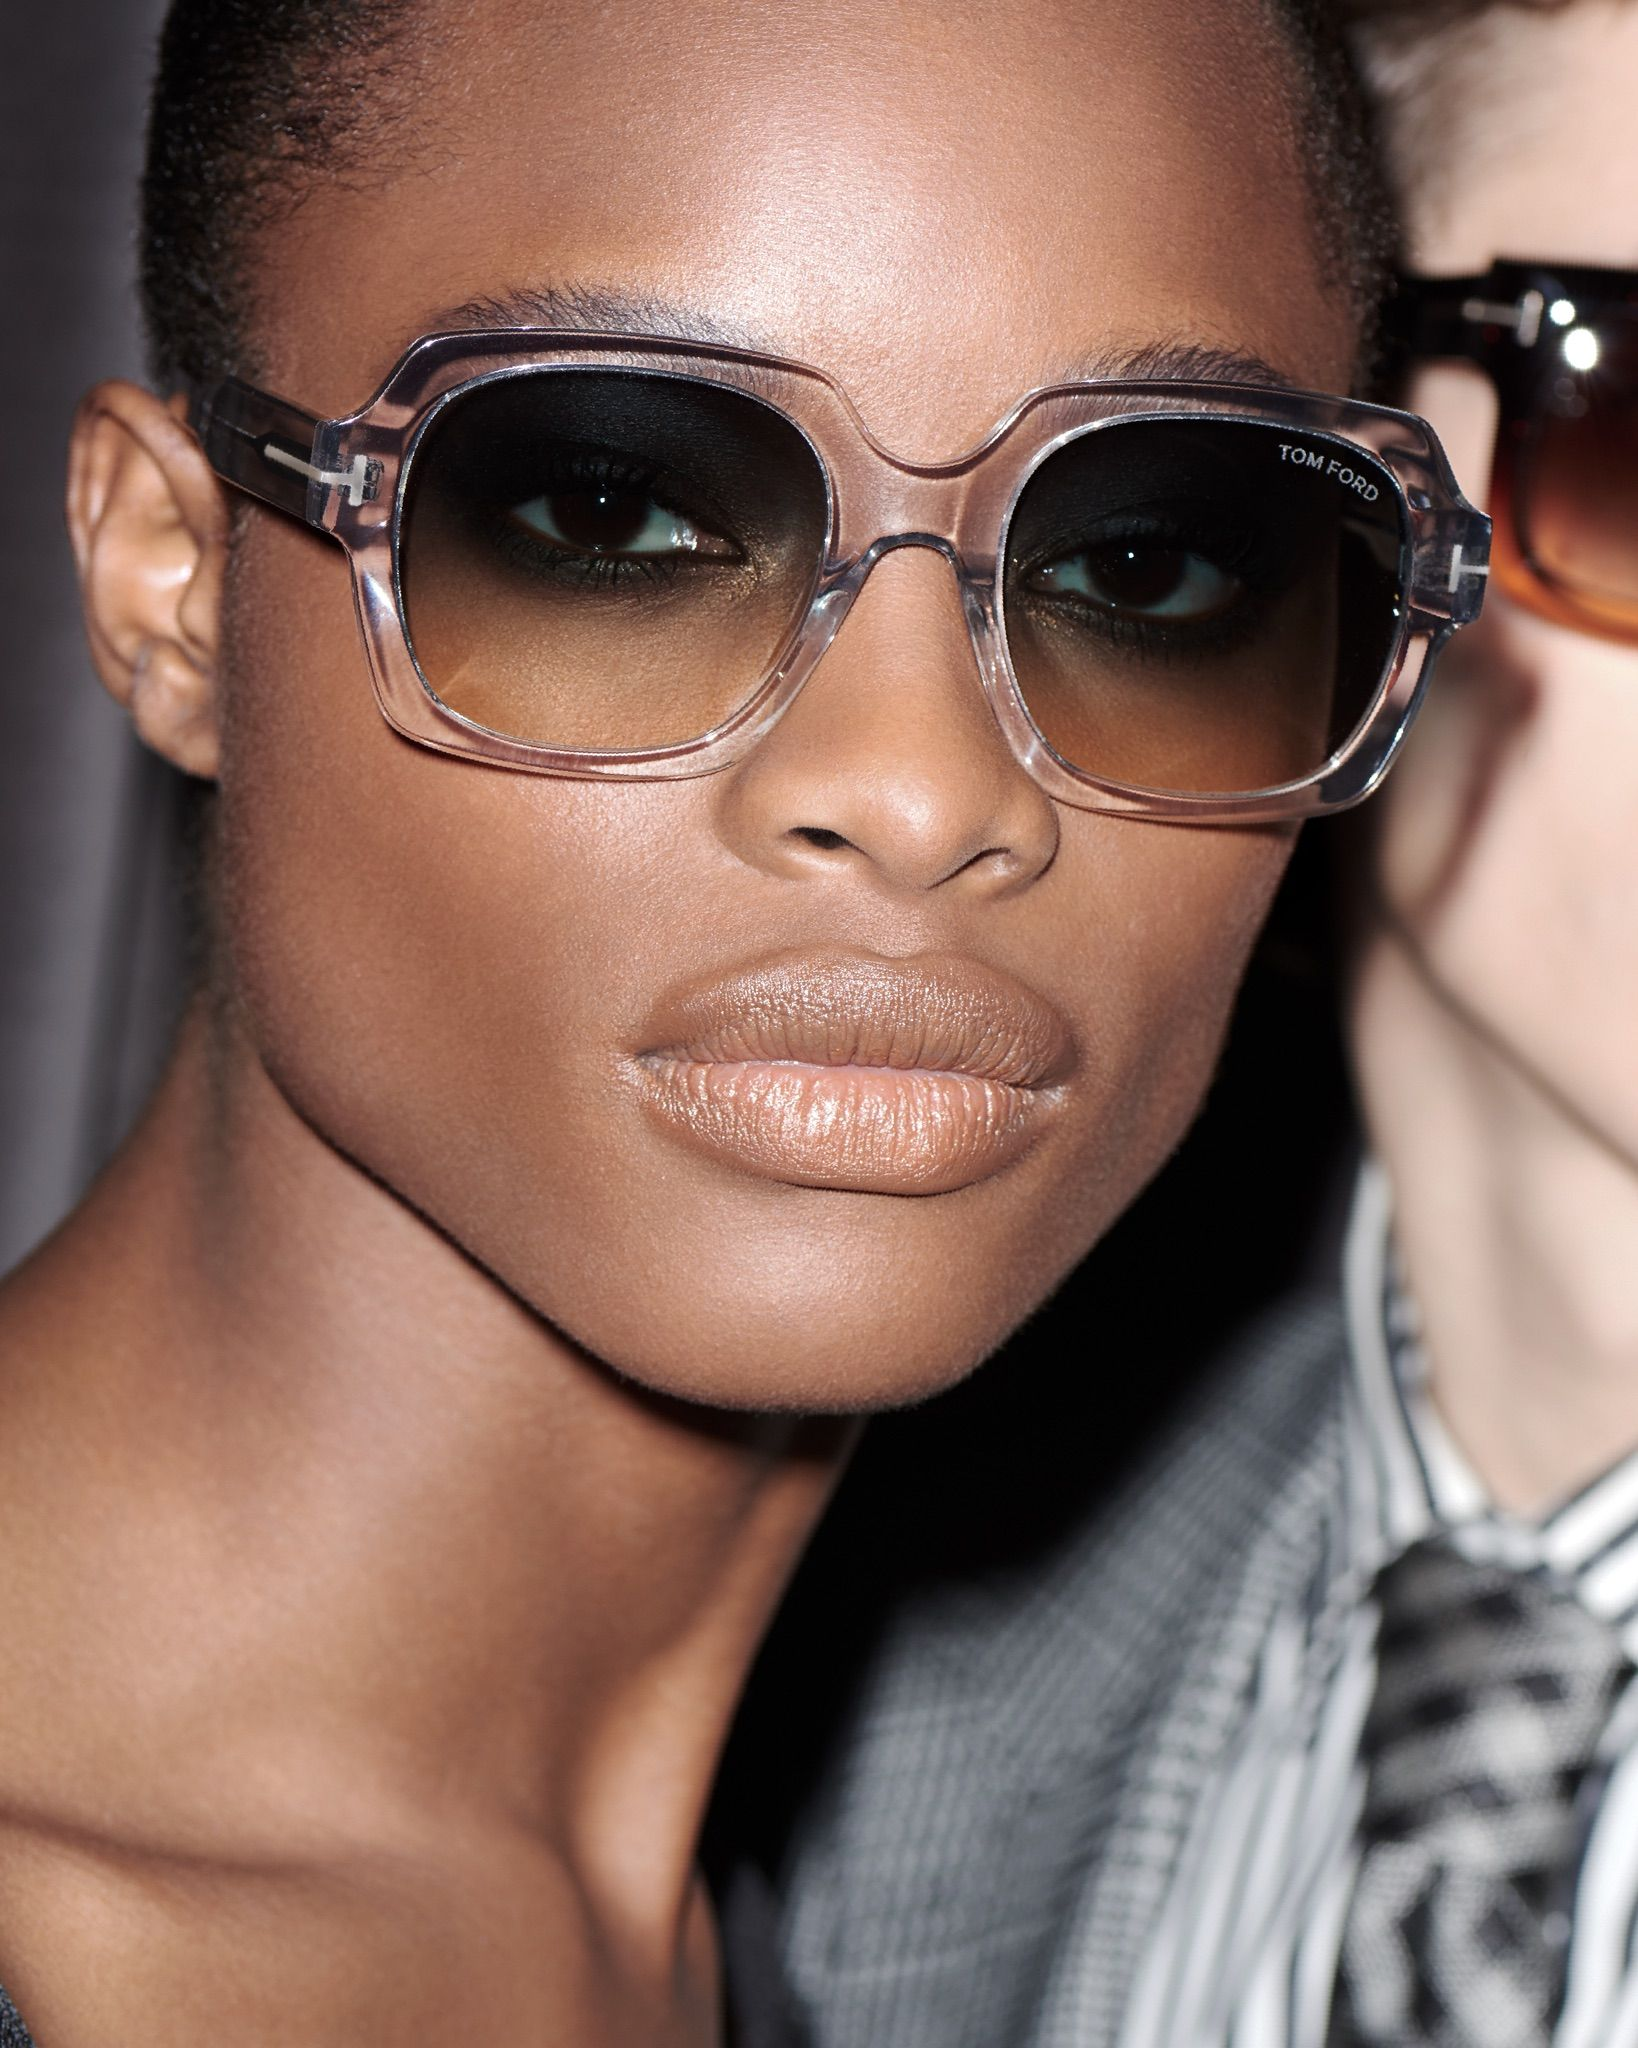 Autumn sunglasses in 2019   TOM FORD EYEWEAR   Pinterest ... d4bc9dbbc4